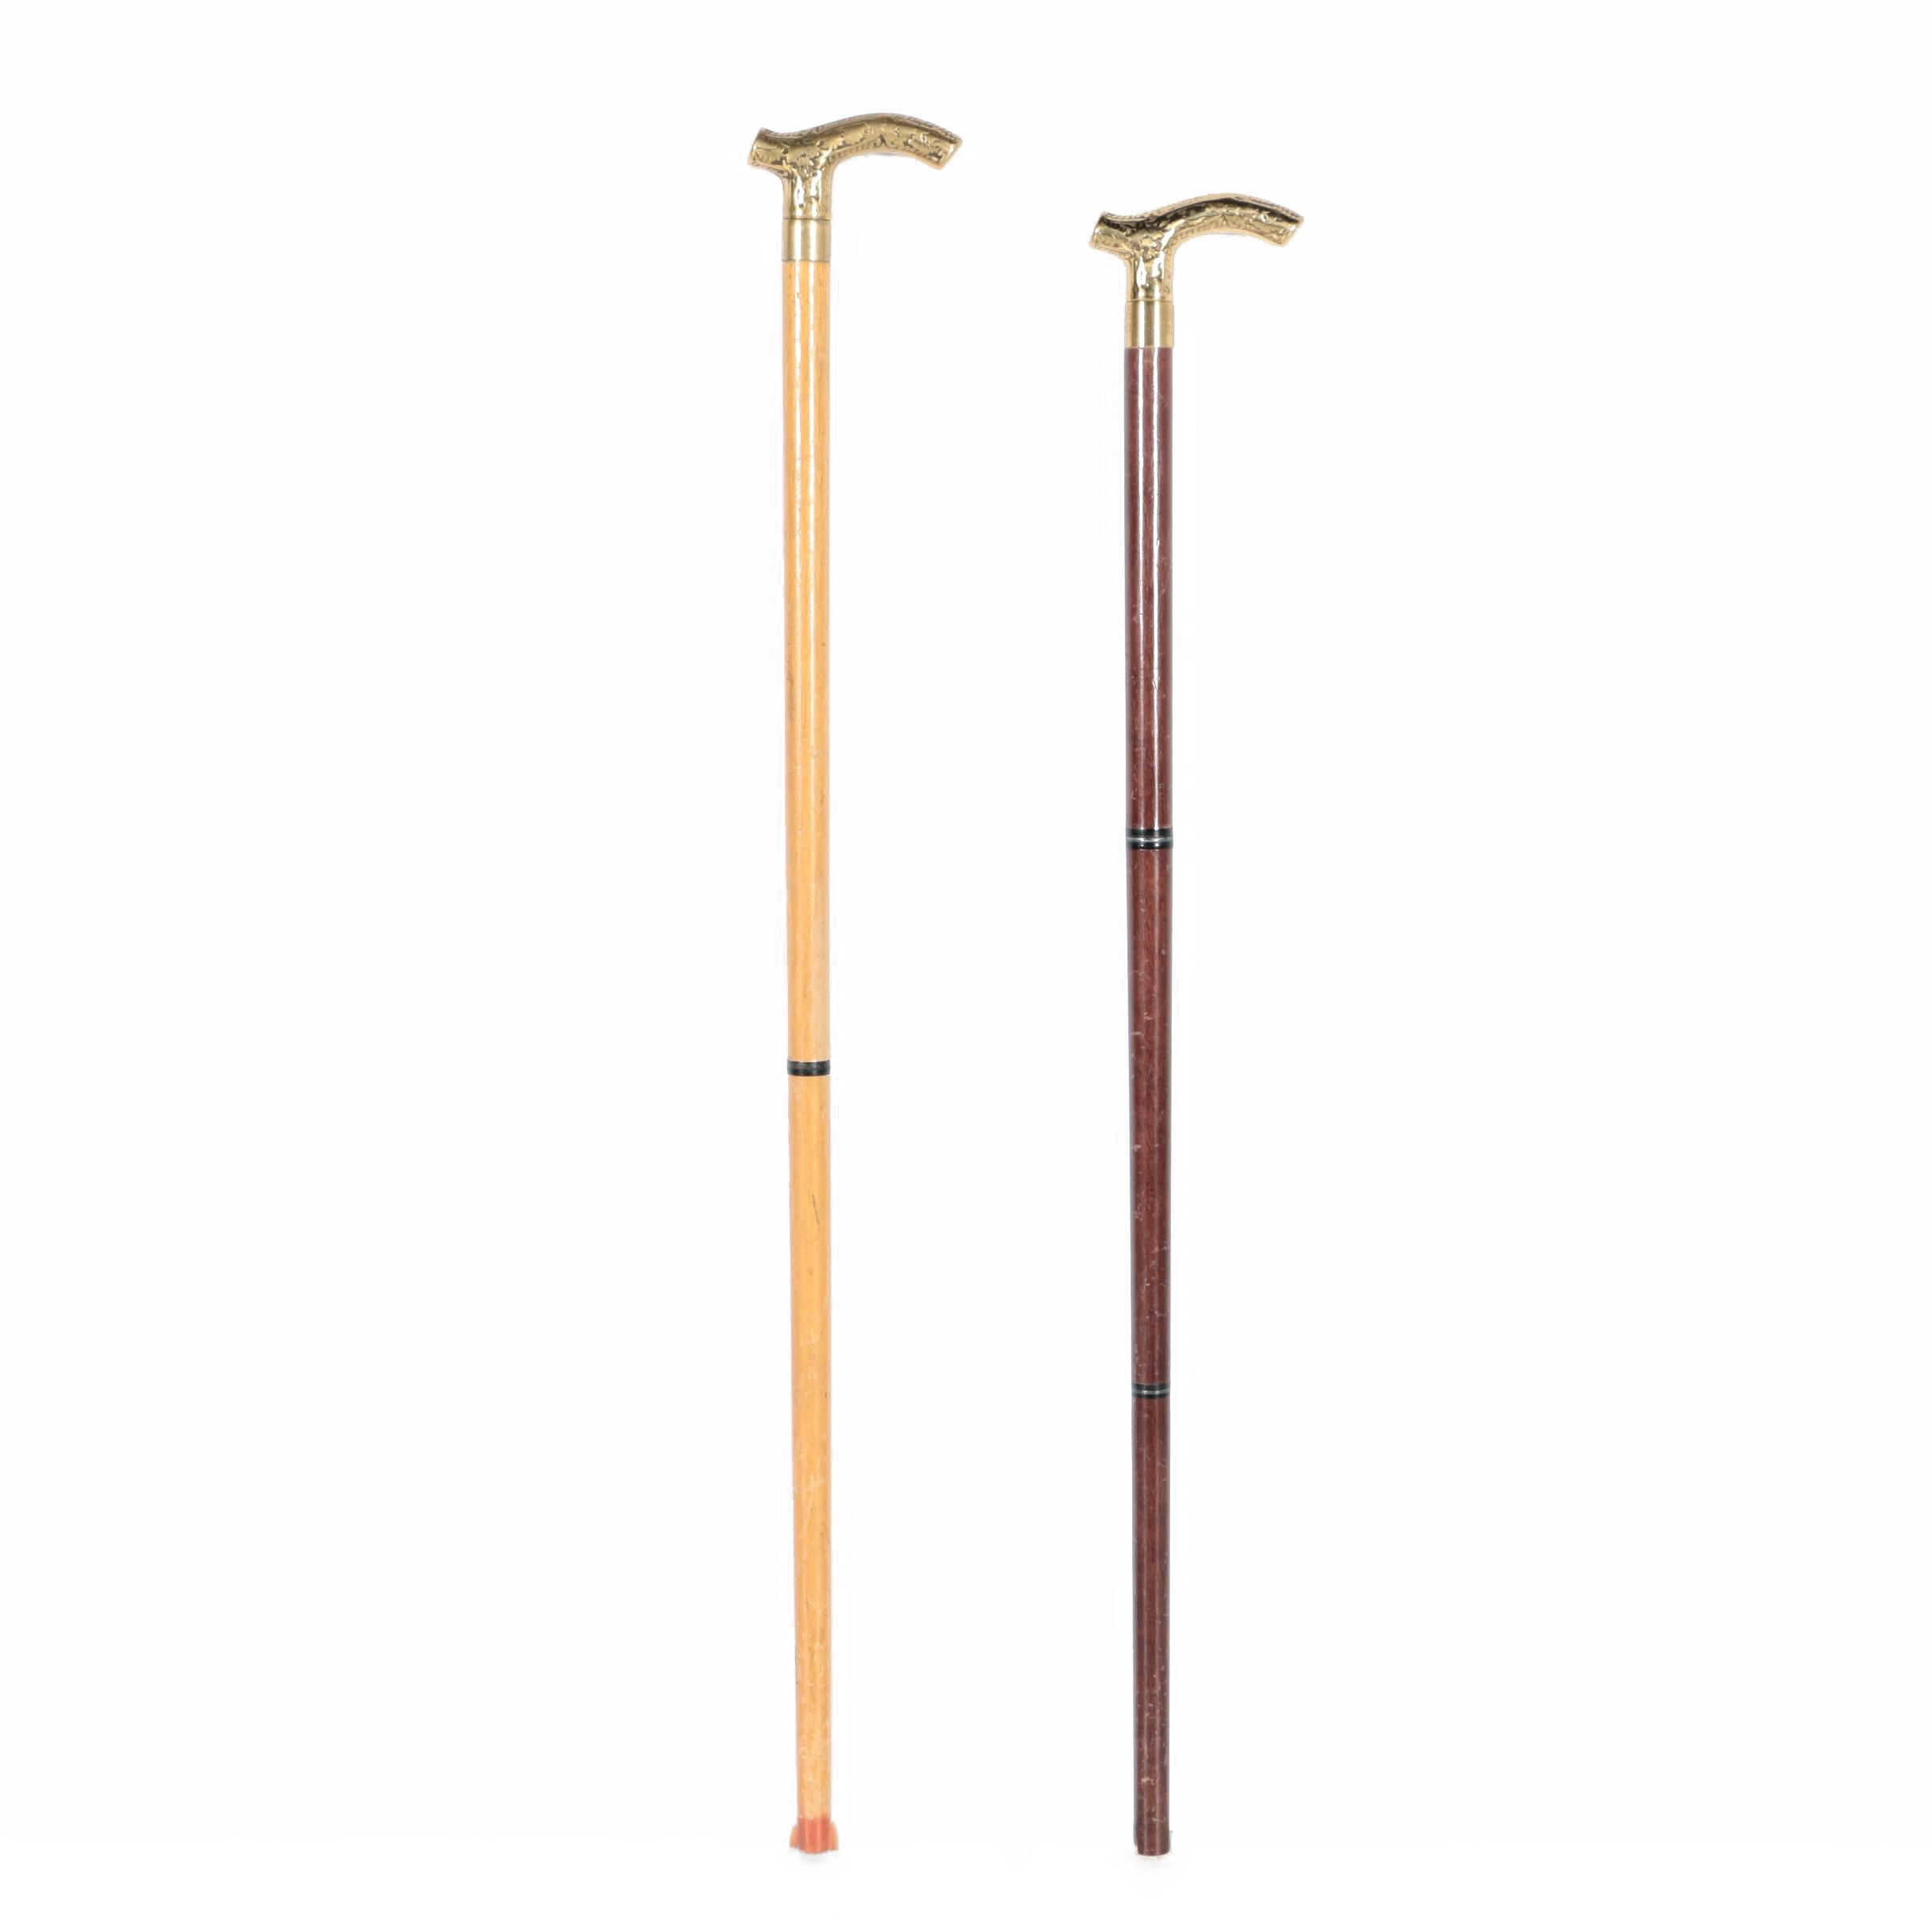 Pair of Wooden Canes with Brass Heads